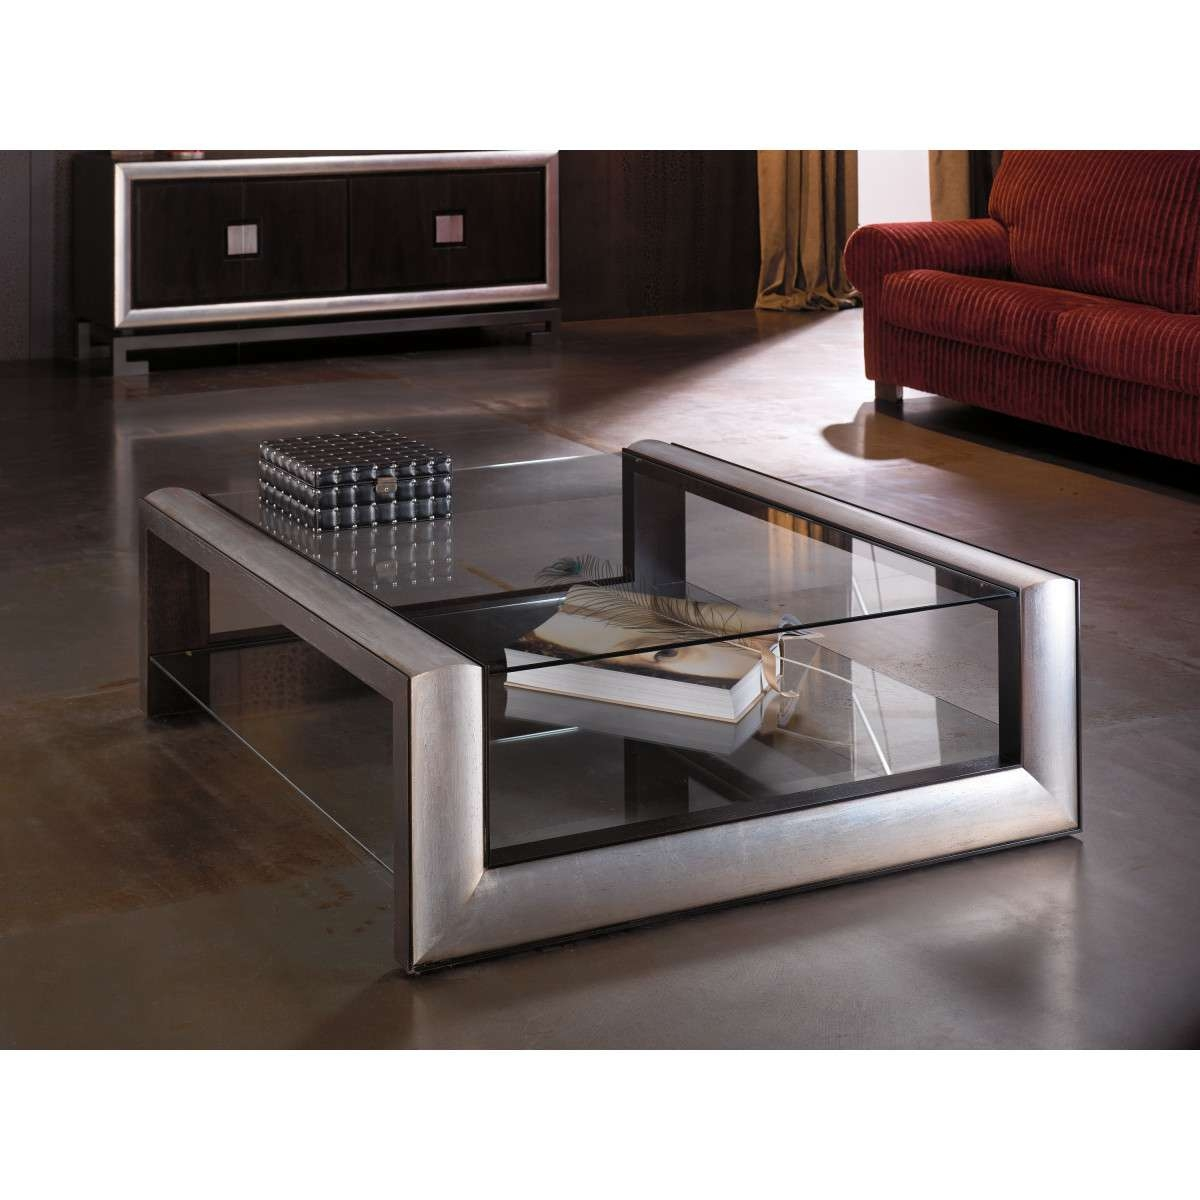 Square Coffee Table Low Furniture Glass Tables Toronto Masterpl Regarding Current Square Glass Coffee Tables (View 15 of 20)